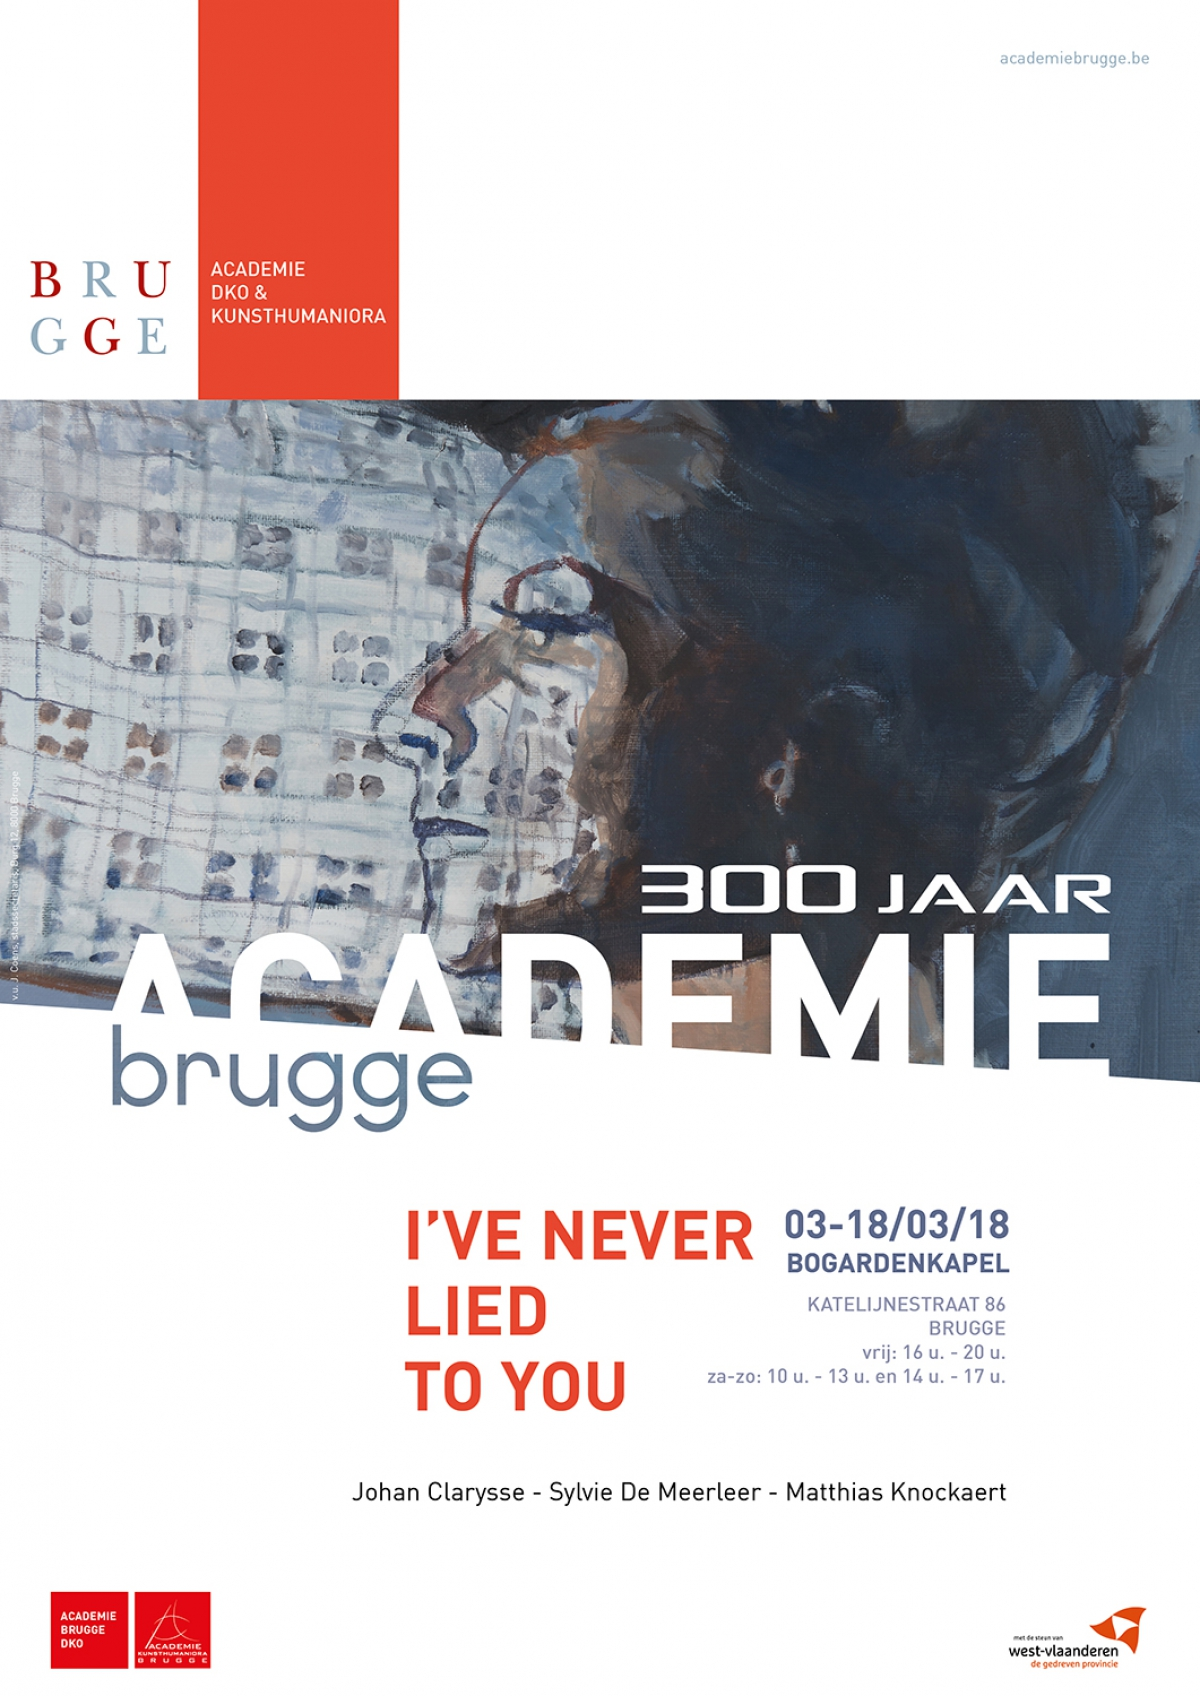 'I've never lied to you' - Johan Clarysse, Sylvie De Meerleer and Matthias Knockaert exhibit at the Bogarden Chapel in Bruges (BE)